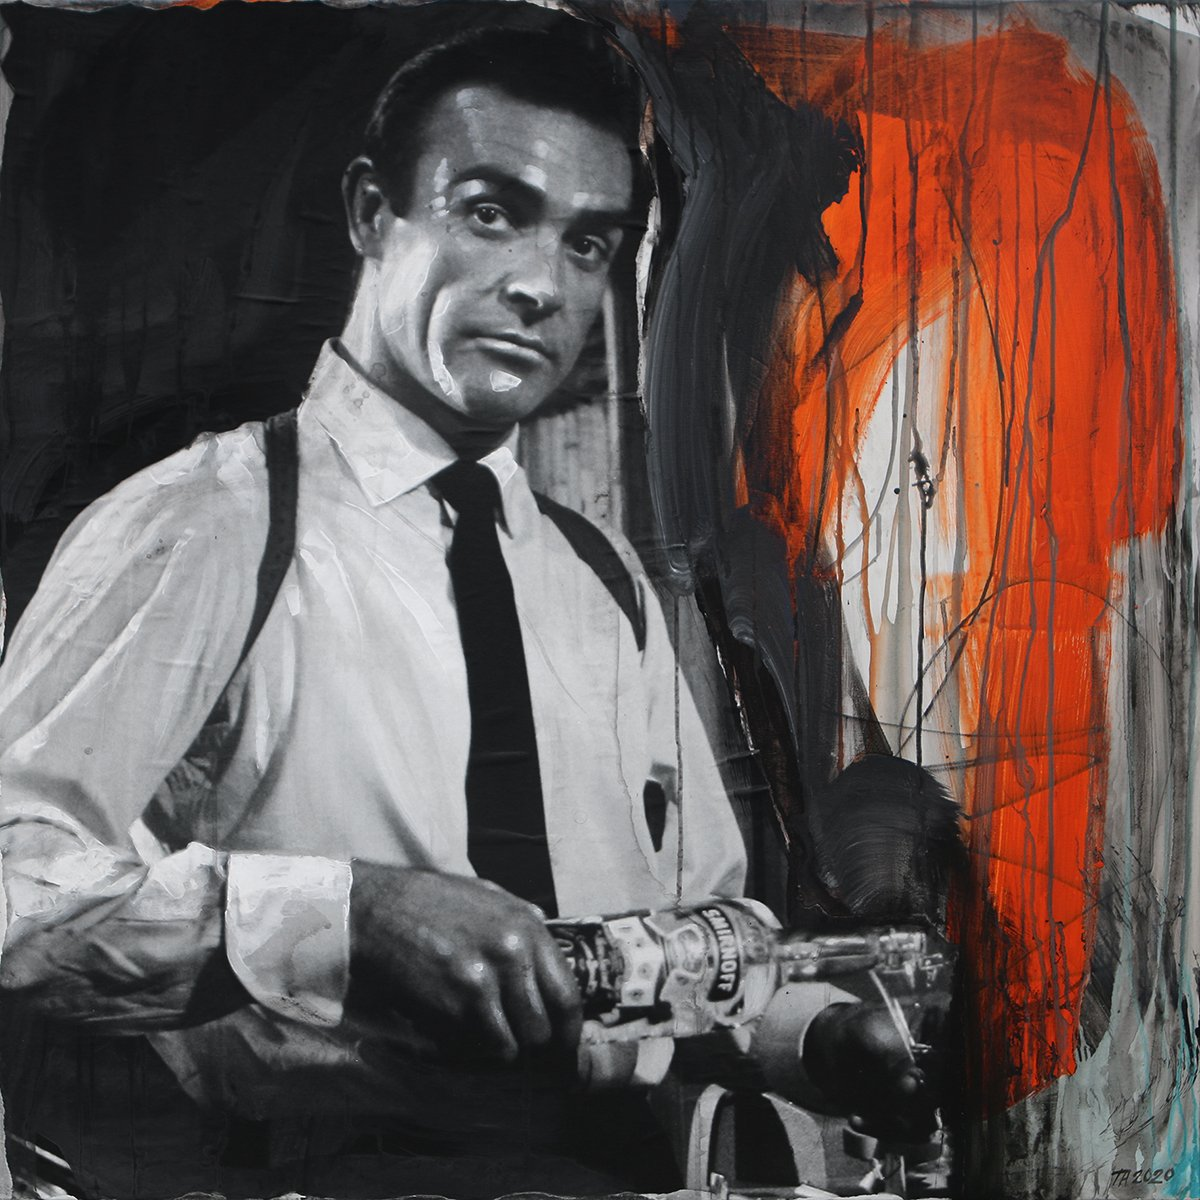 Terese-Andersen-Painting-100x100cm-James-Bond-1